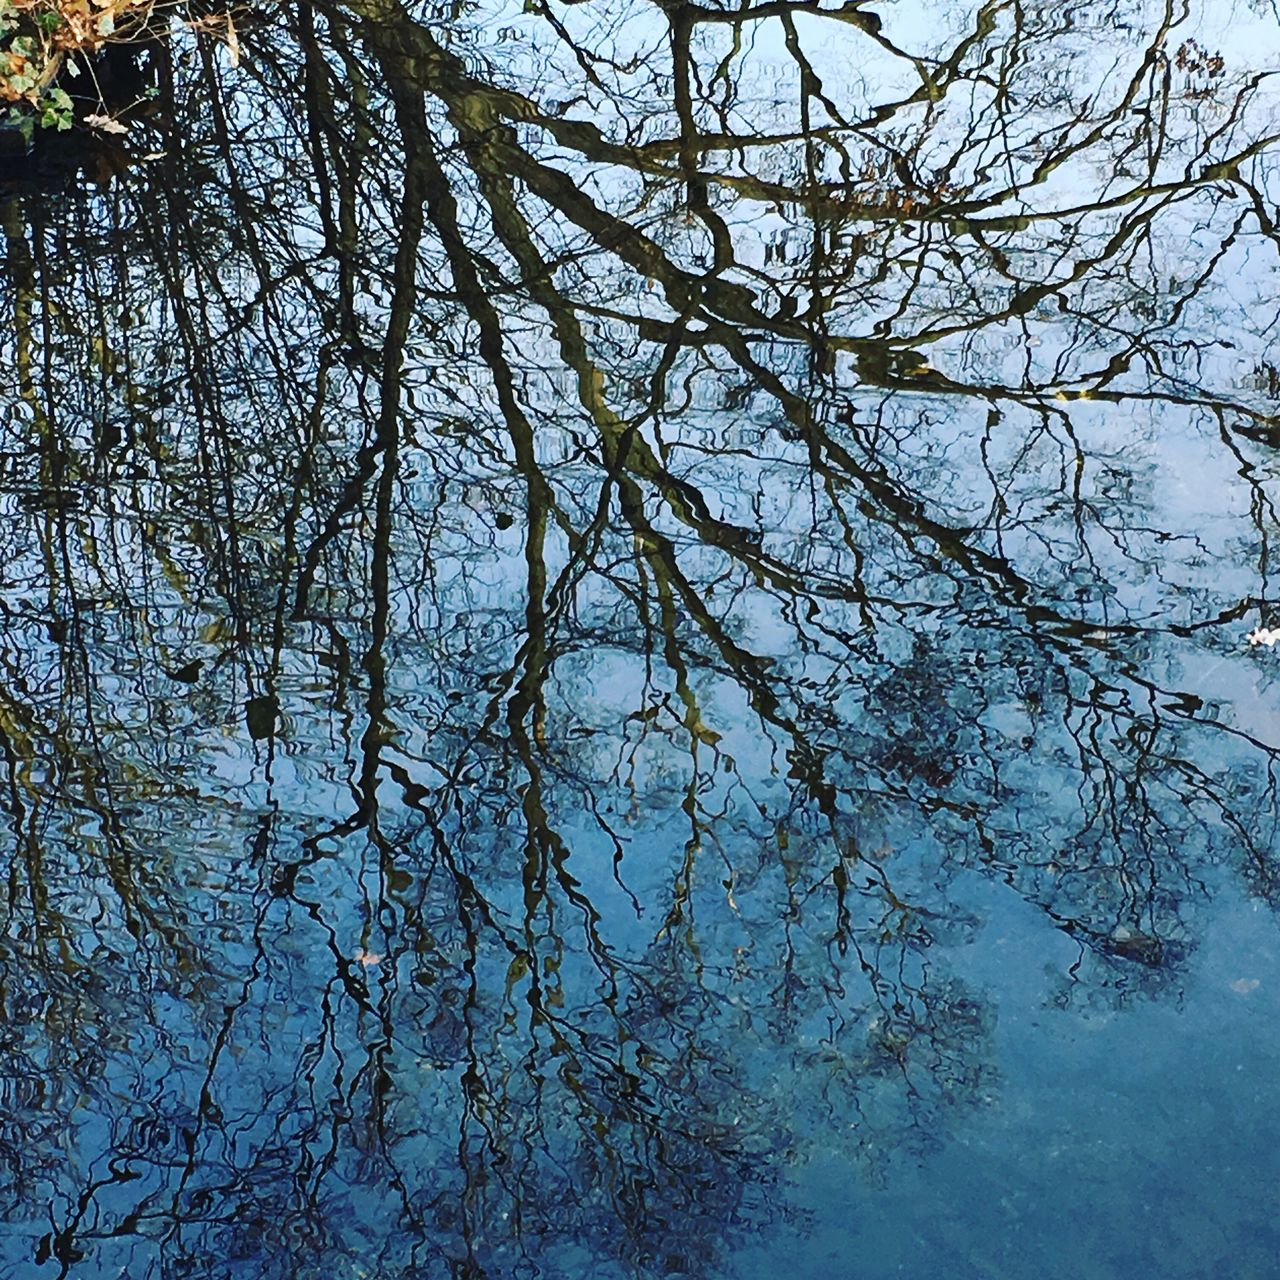 Reflection Reflections Blue Sky Water Reflections Tree Treeshadow Tree Reflection  Branch Beauty In Nature Outdoors Tranquility Blue Water Blue Water Blue Sky In Motion